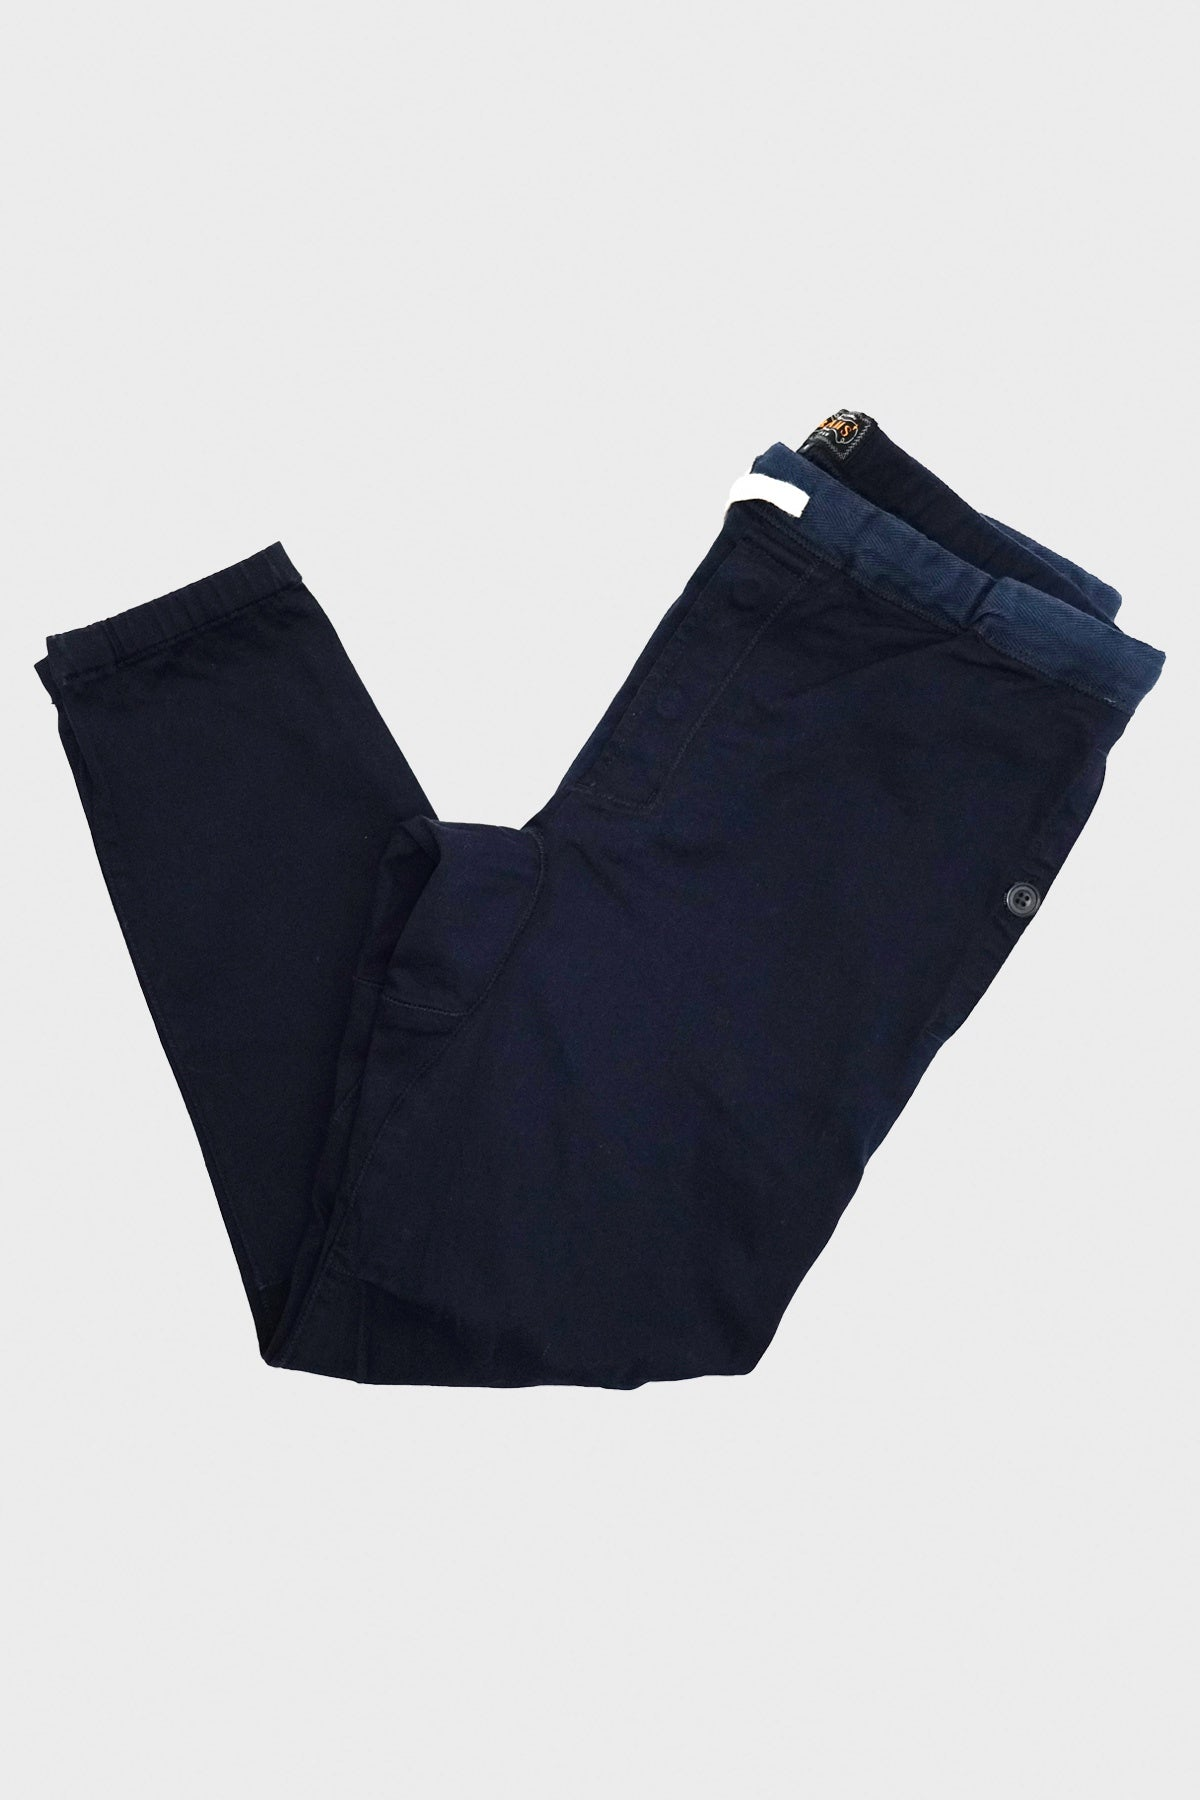 Beams Plus - Gym Pants Slim Twill - Navy - Canoe Club